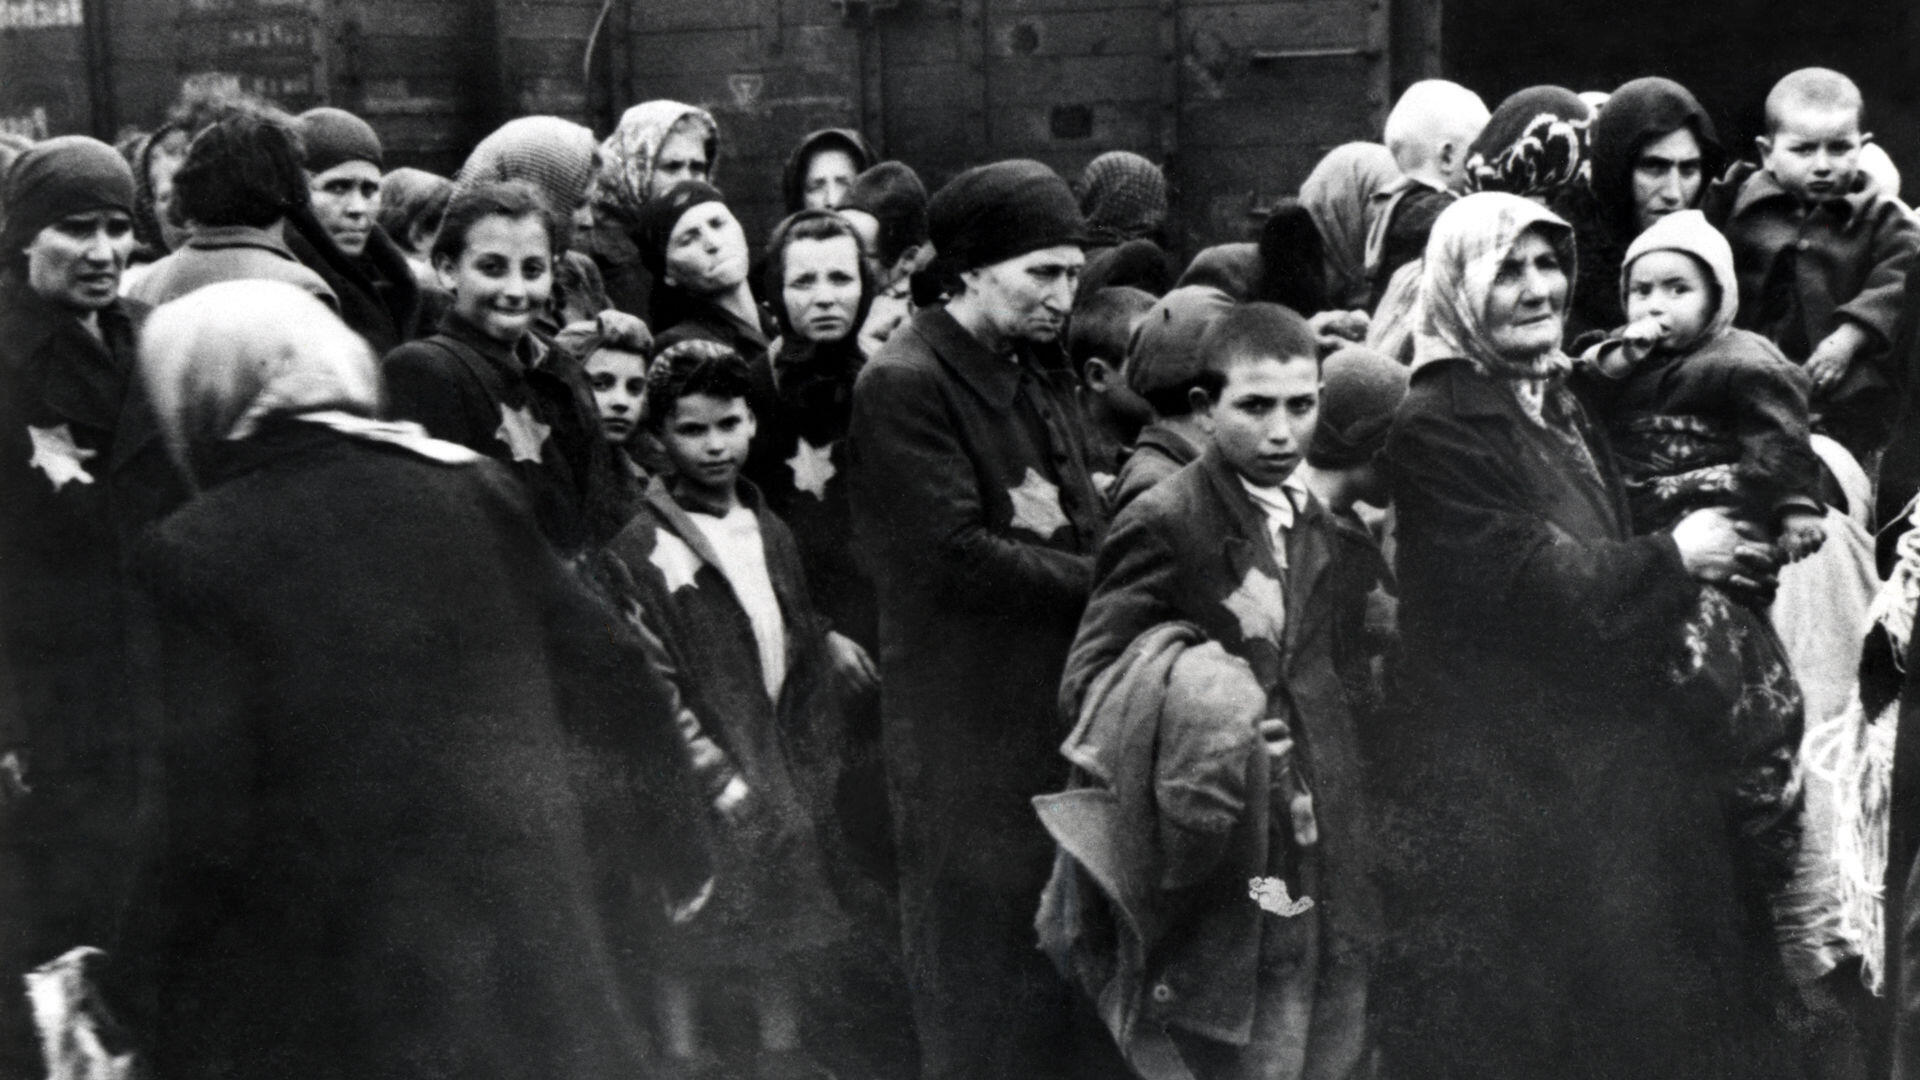 Horrors of Auschwitz: The Numbers Behind WWII's Deadliest Concentration Camp